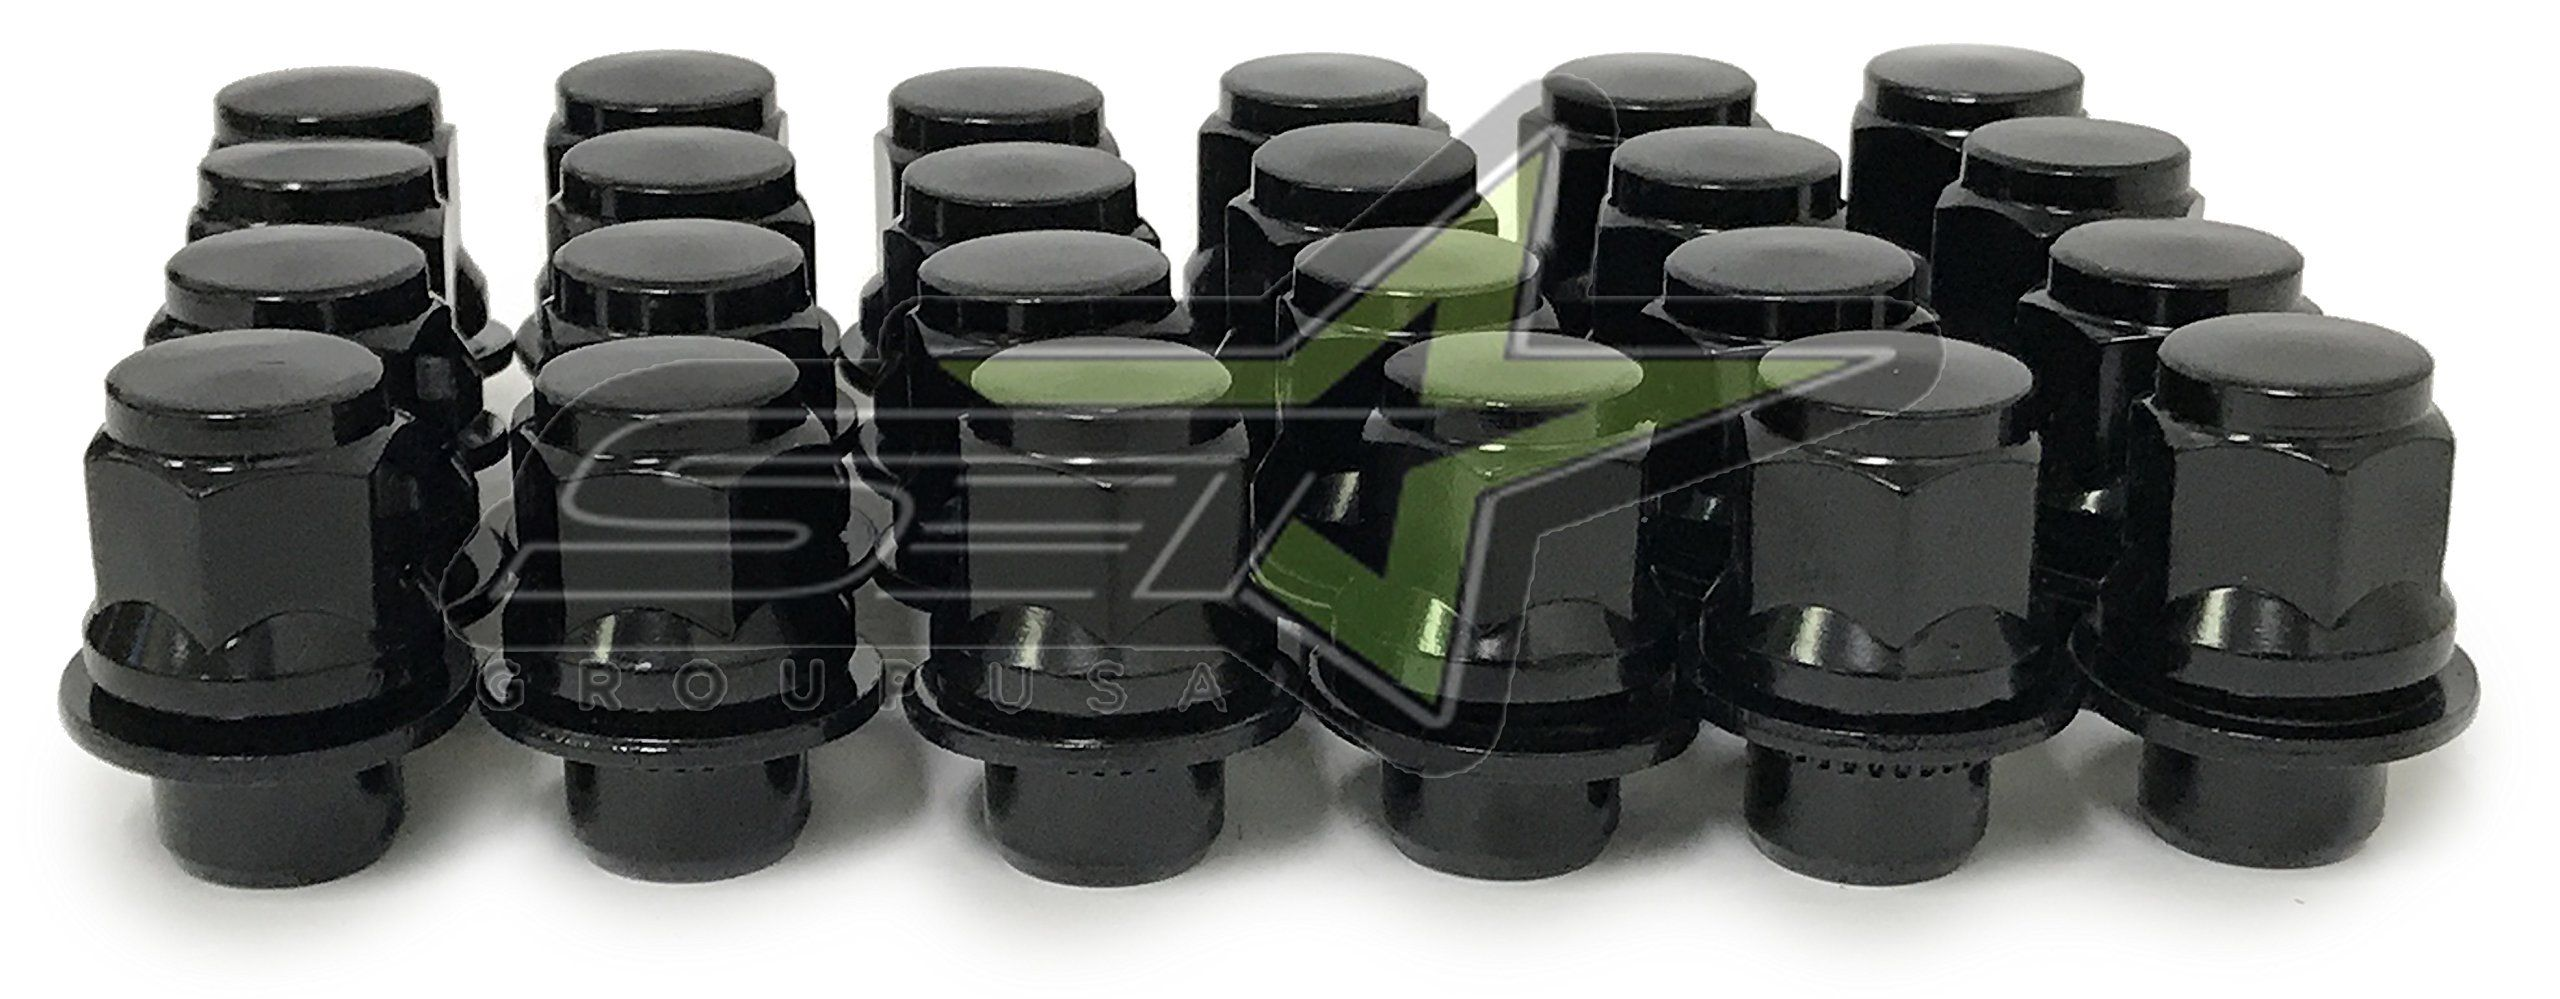 24 Pcs Black Mag Lug Nuts For Toyota Factory Factory Wheels On 12x1.25 Studs Car Truck